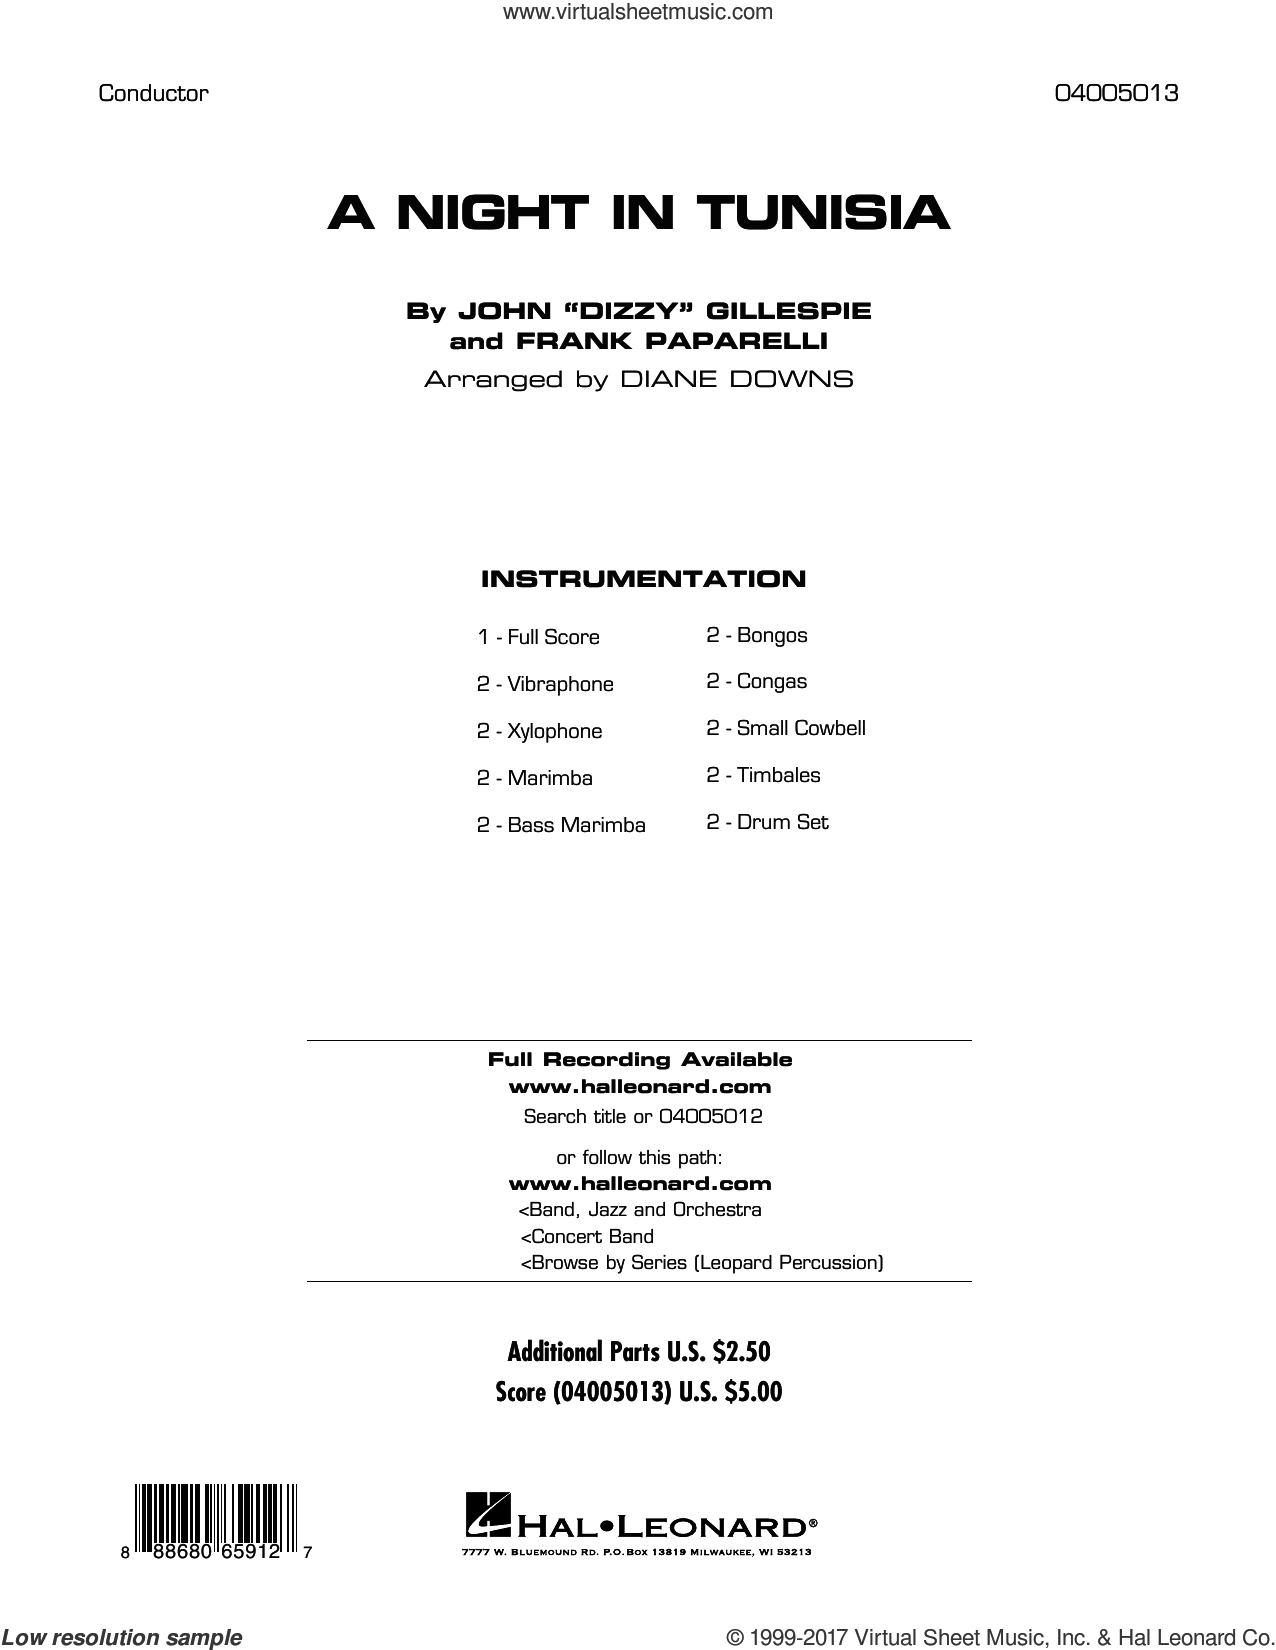 A Night in Tunisia (COMPLETE) sheet music for concert band by Dizzy Gillespie, Diane Downs and Frank Paparelli, intermediate skill level